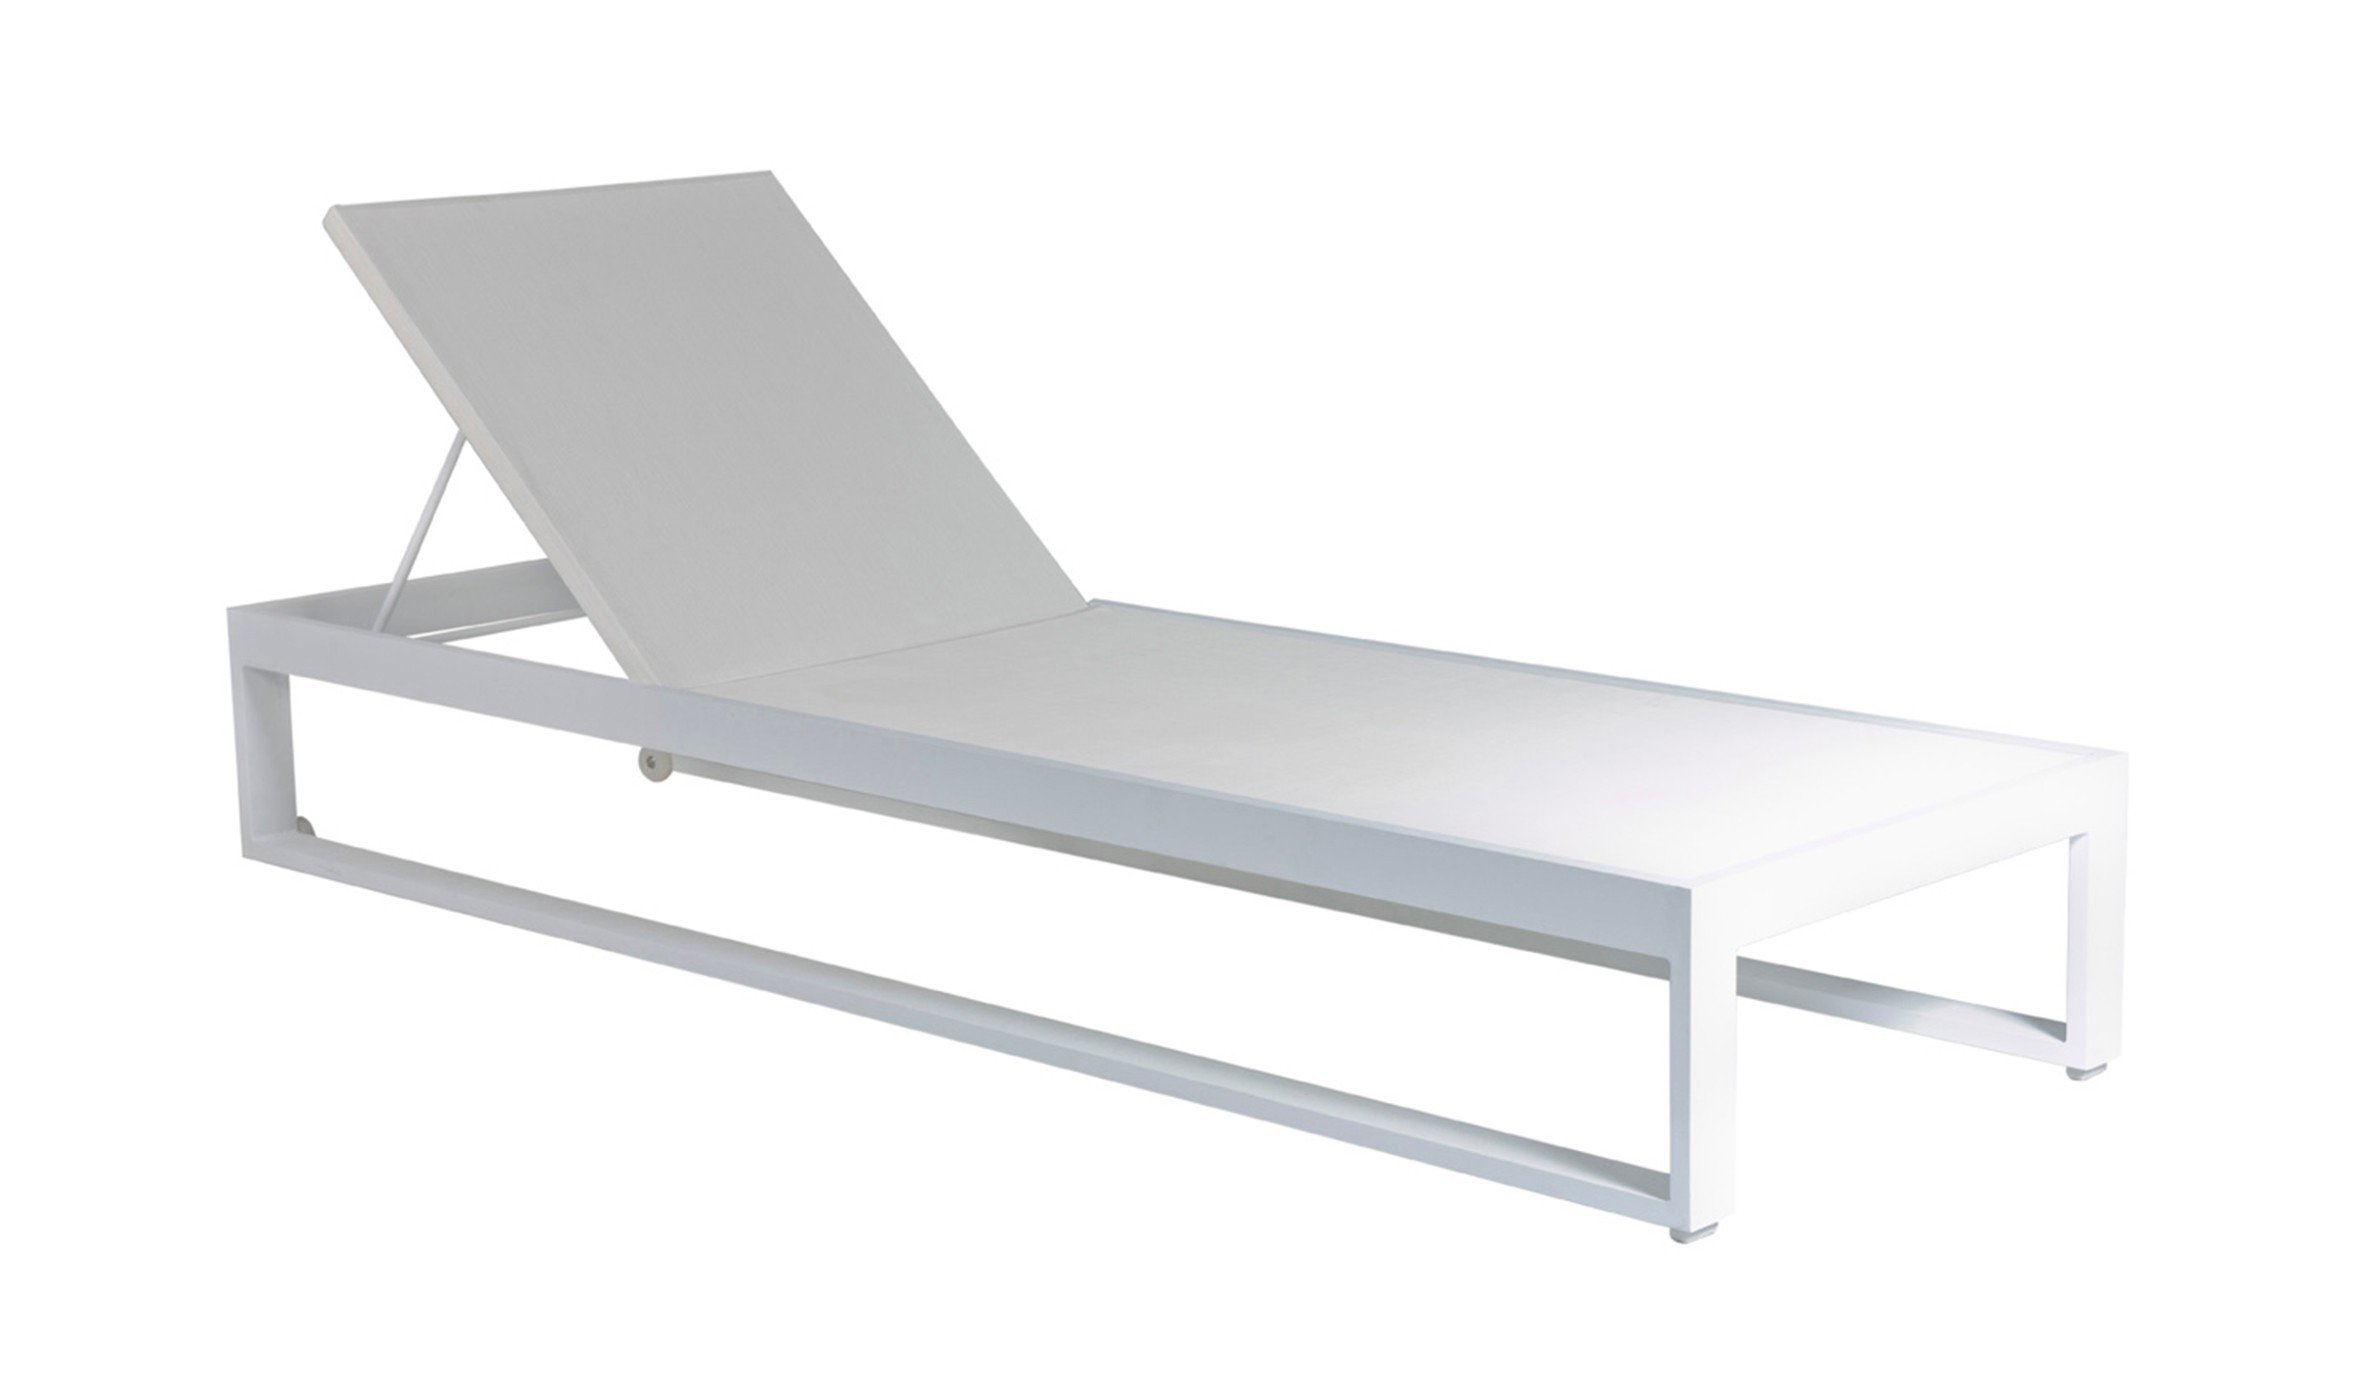 Furniture Thumbnails Sunbeds outdoor-sunbeds-and-daybeds-cancun-ali-200